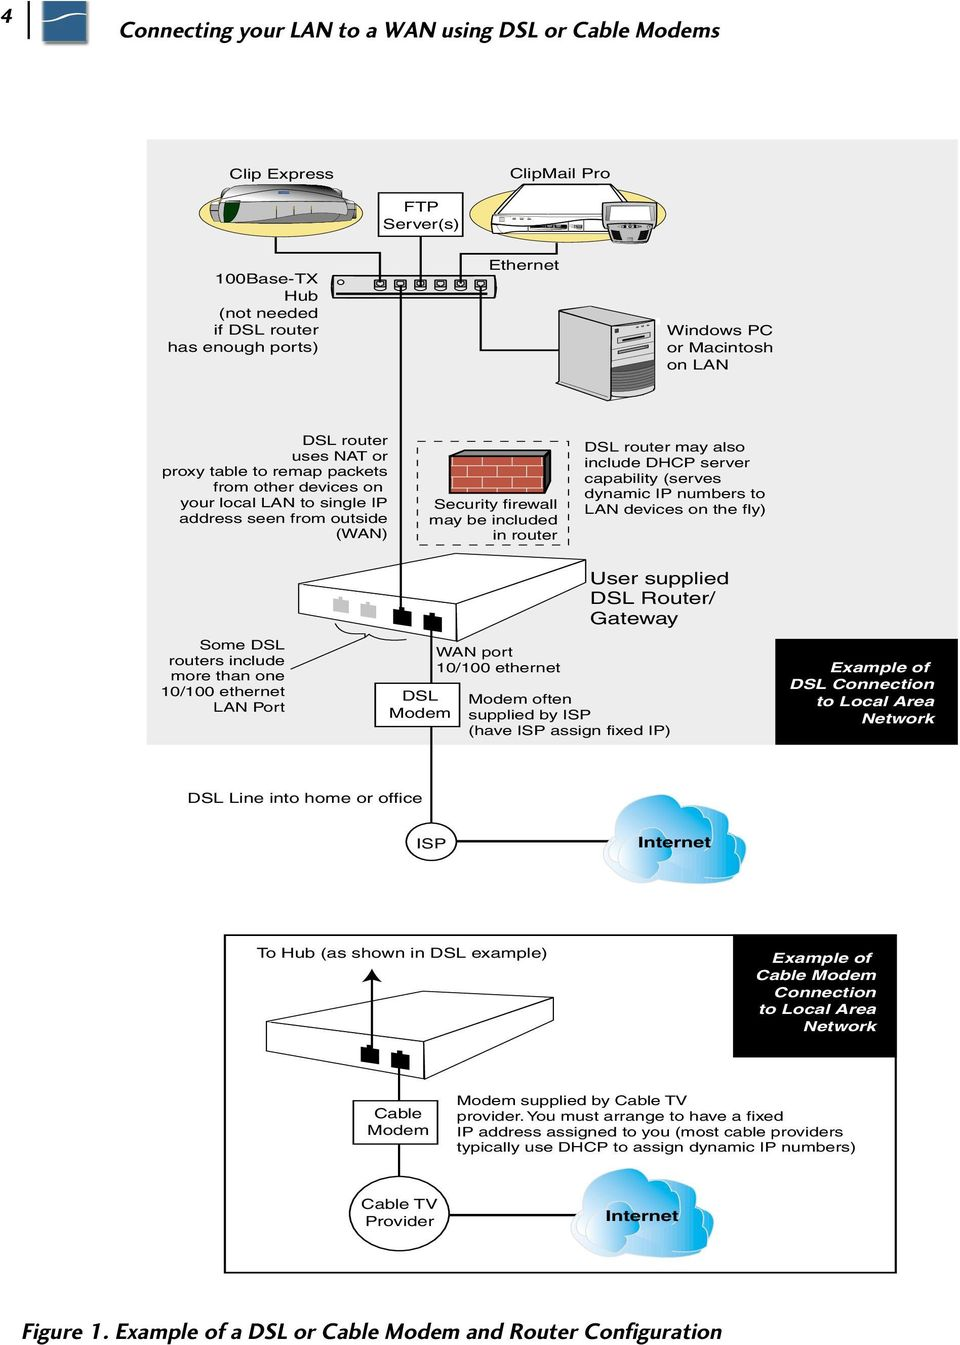 hight resolution of may be included in router dsl router may also include dhcp server capability serves dynamic